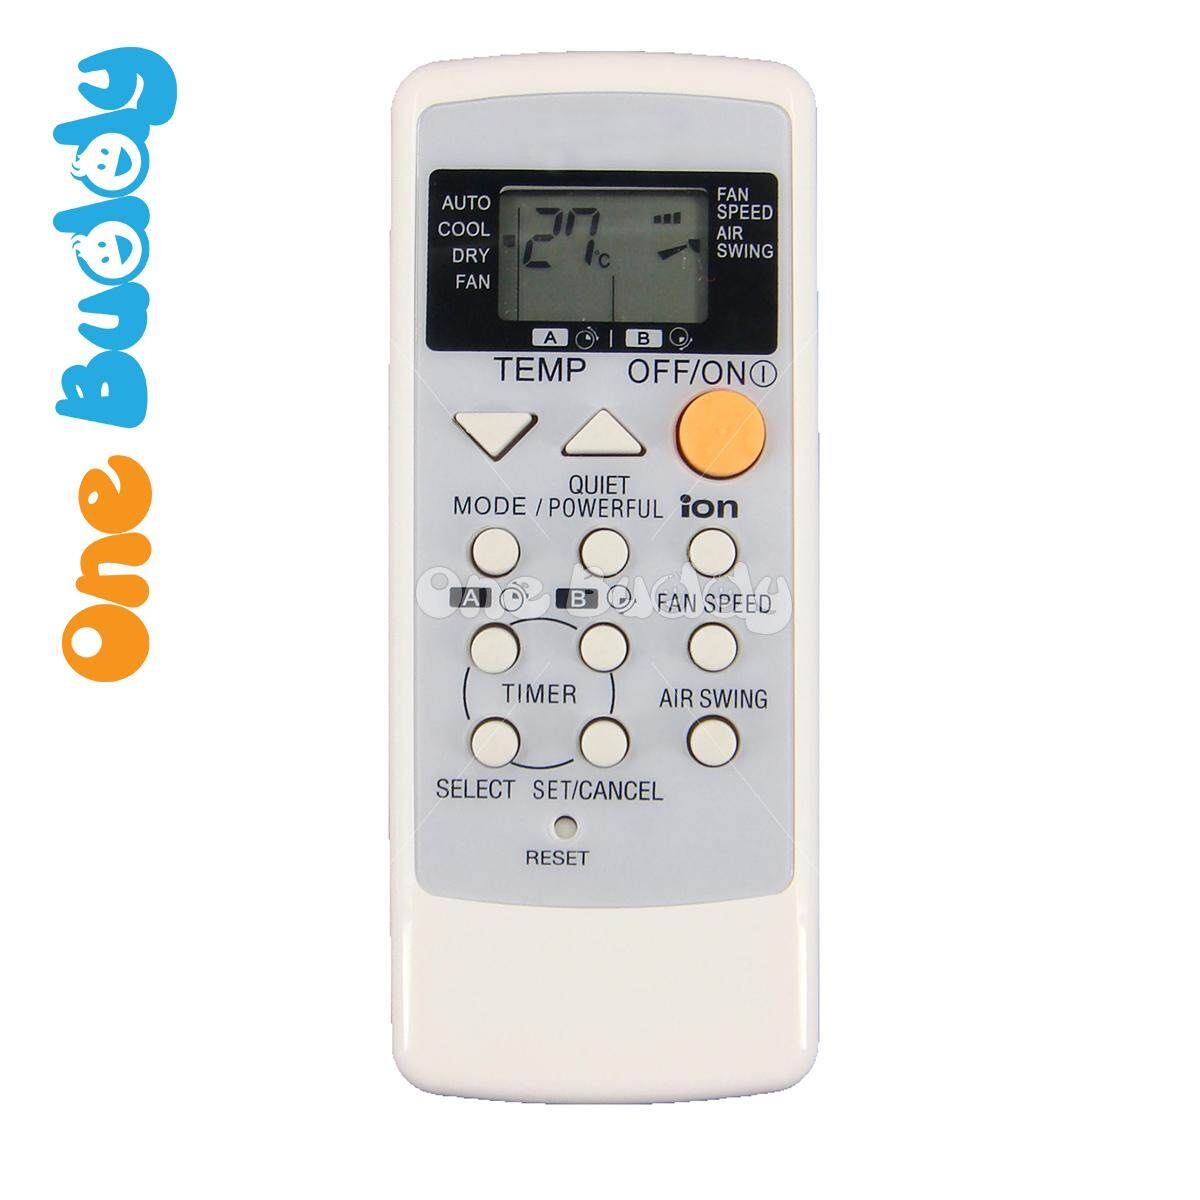 PANASONIC Aircon Remote Control A75C2458 Replacement